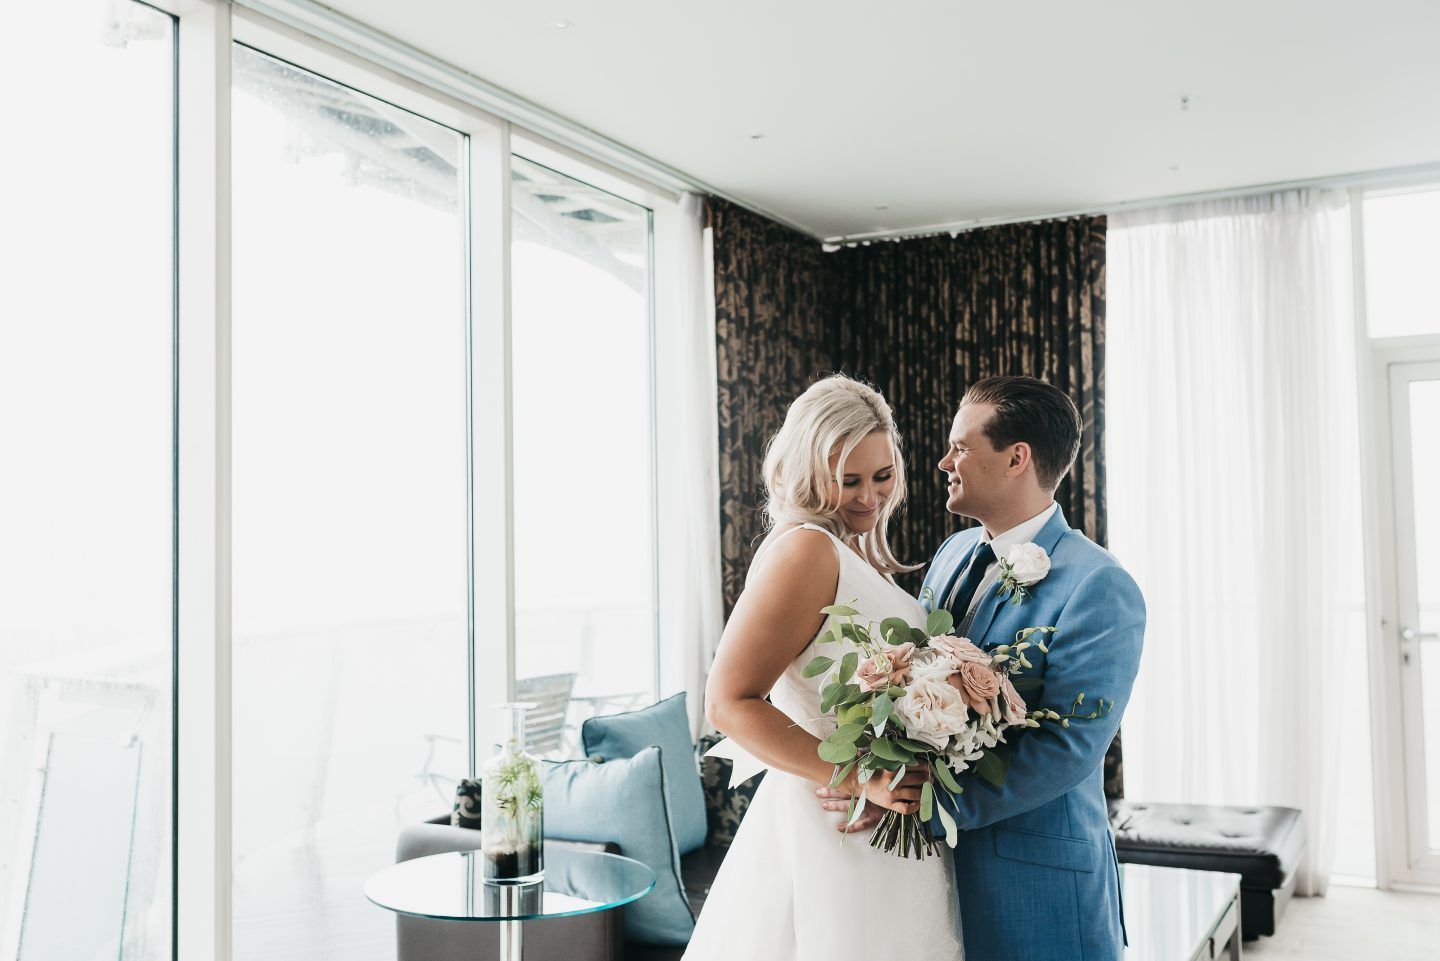 Where Will Your Wedding Budget Go?